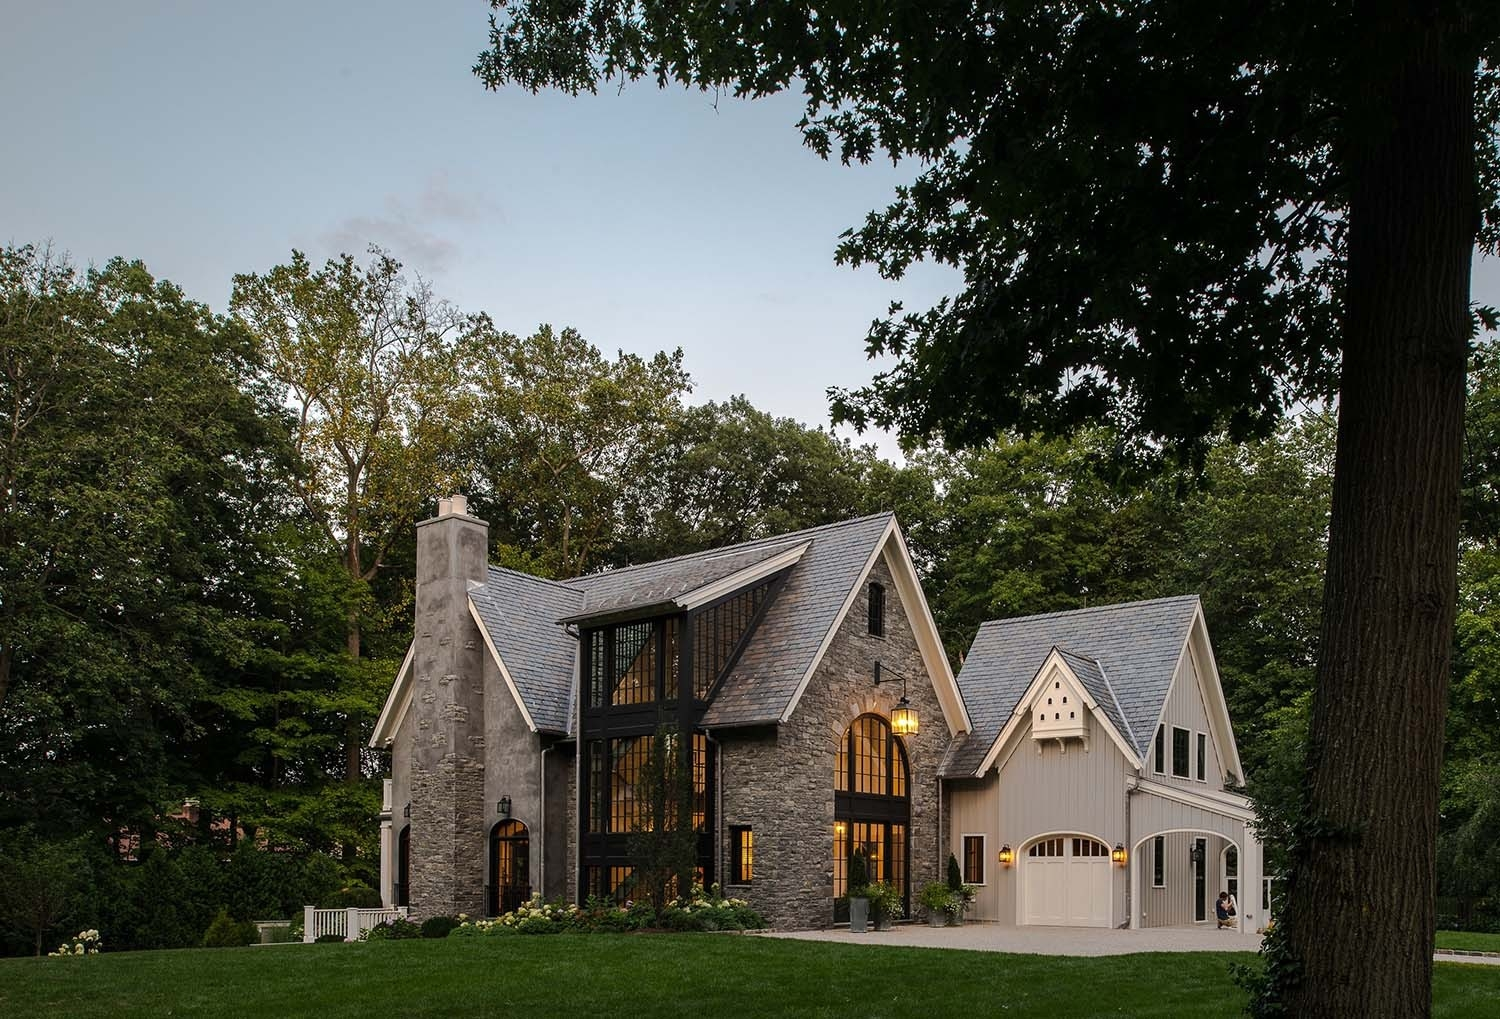 Farmhouse Architecture Features Belgian Farmhouse In New Canaan